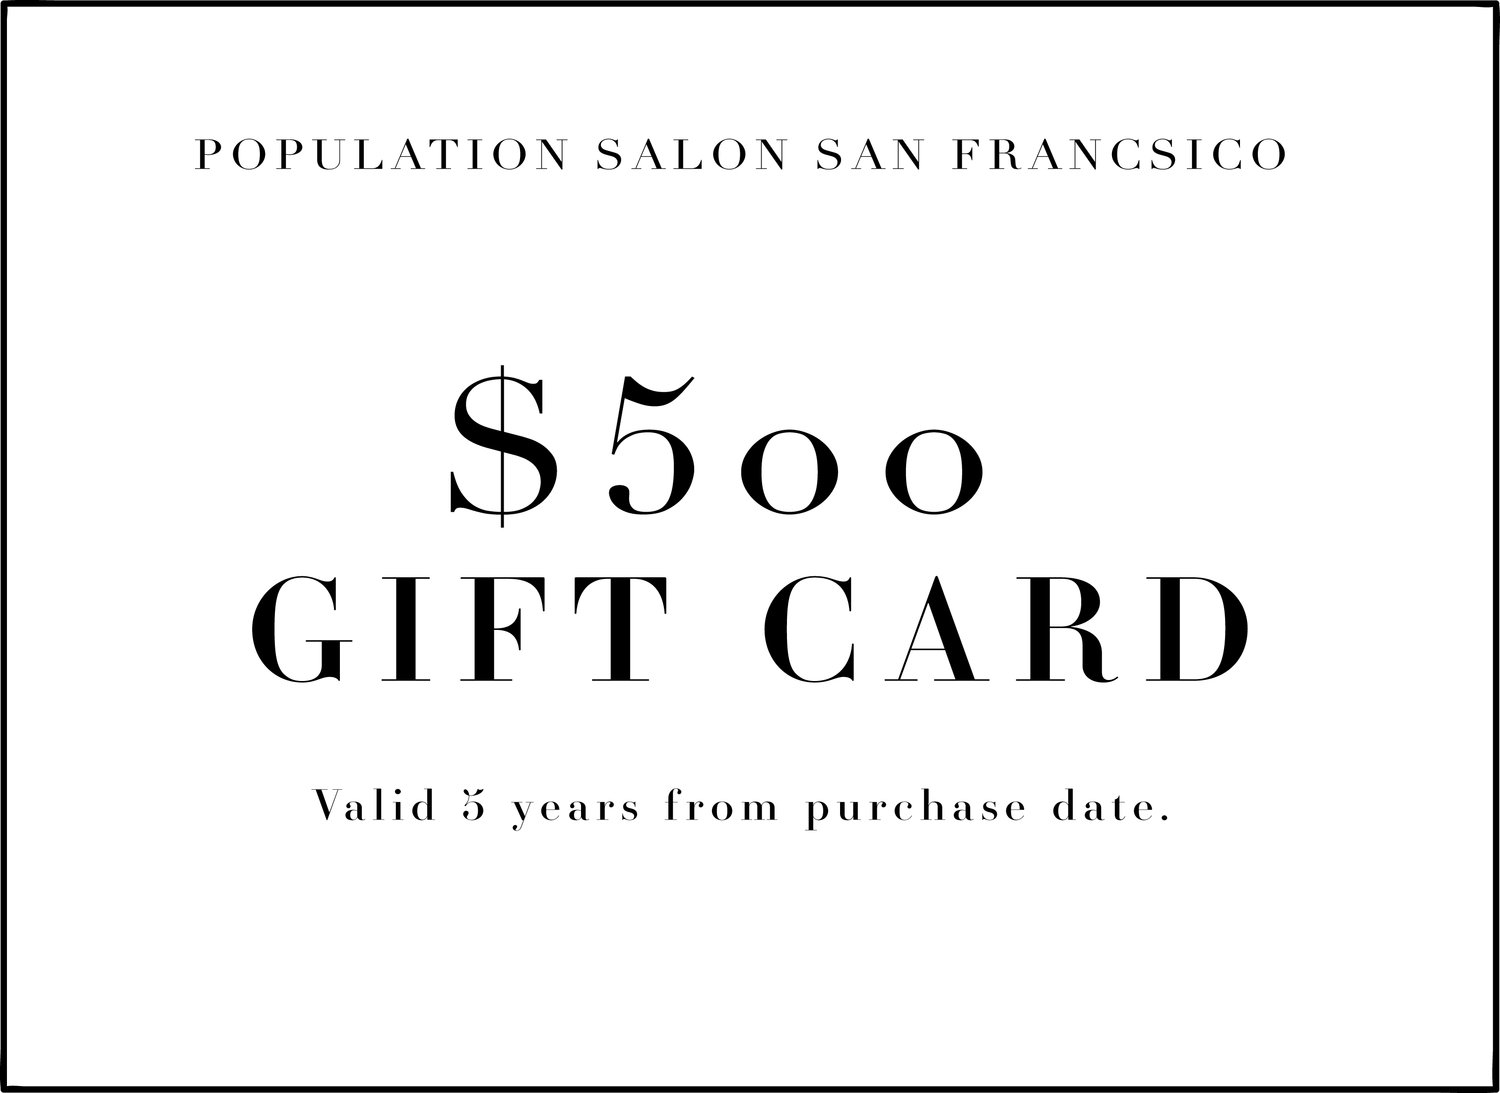 Population Salon Online Gift Cards Voucher This Certificate Is Not Redeemable For Cash